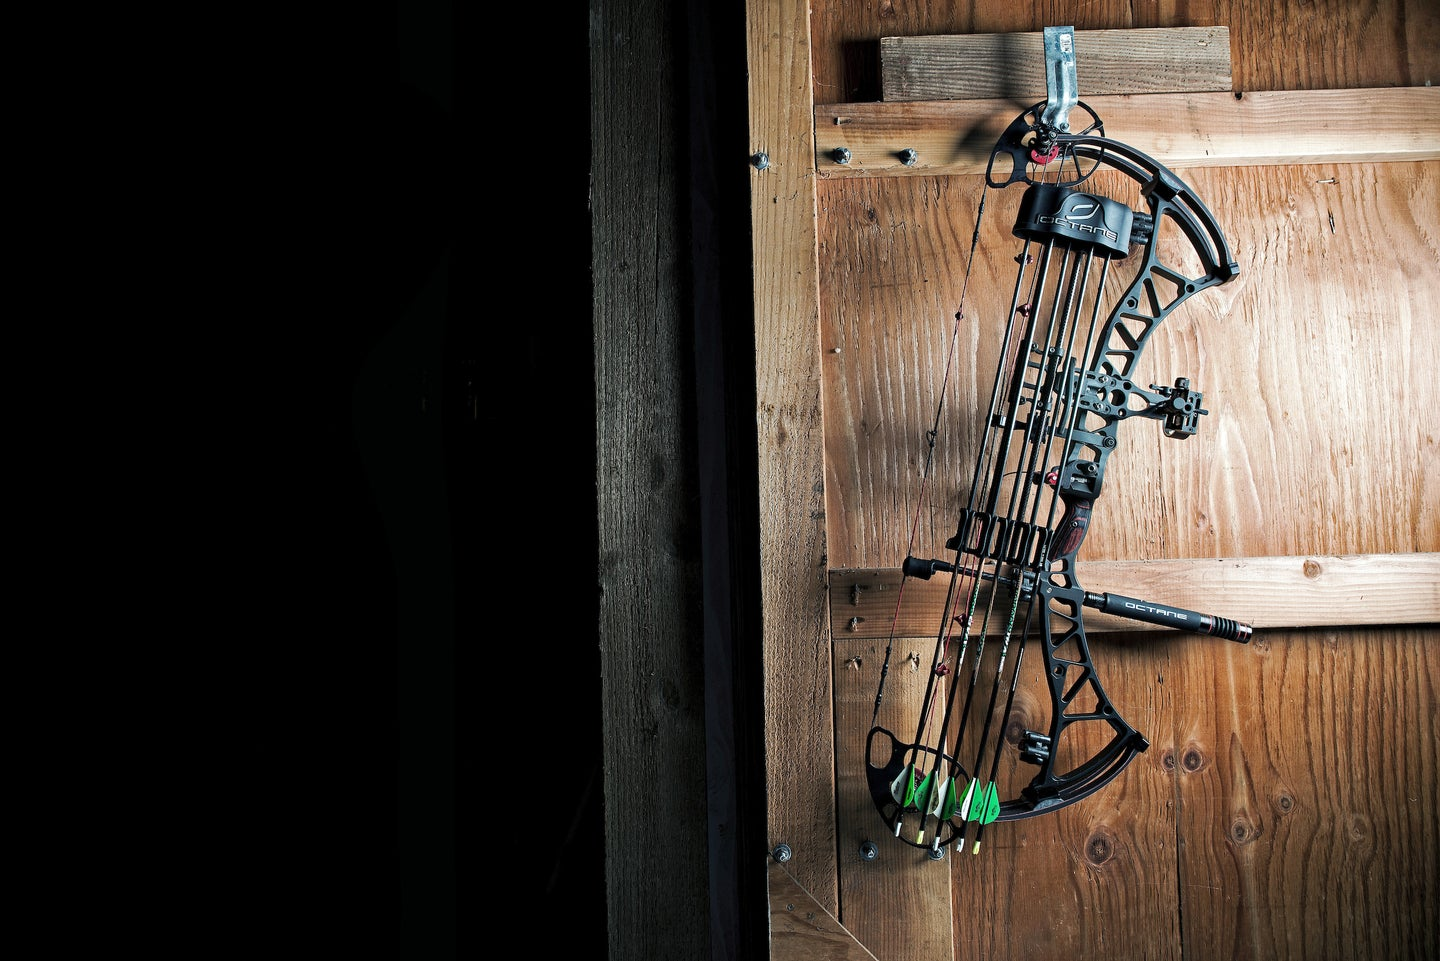 Compound bow hanging on barn door